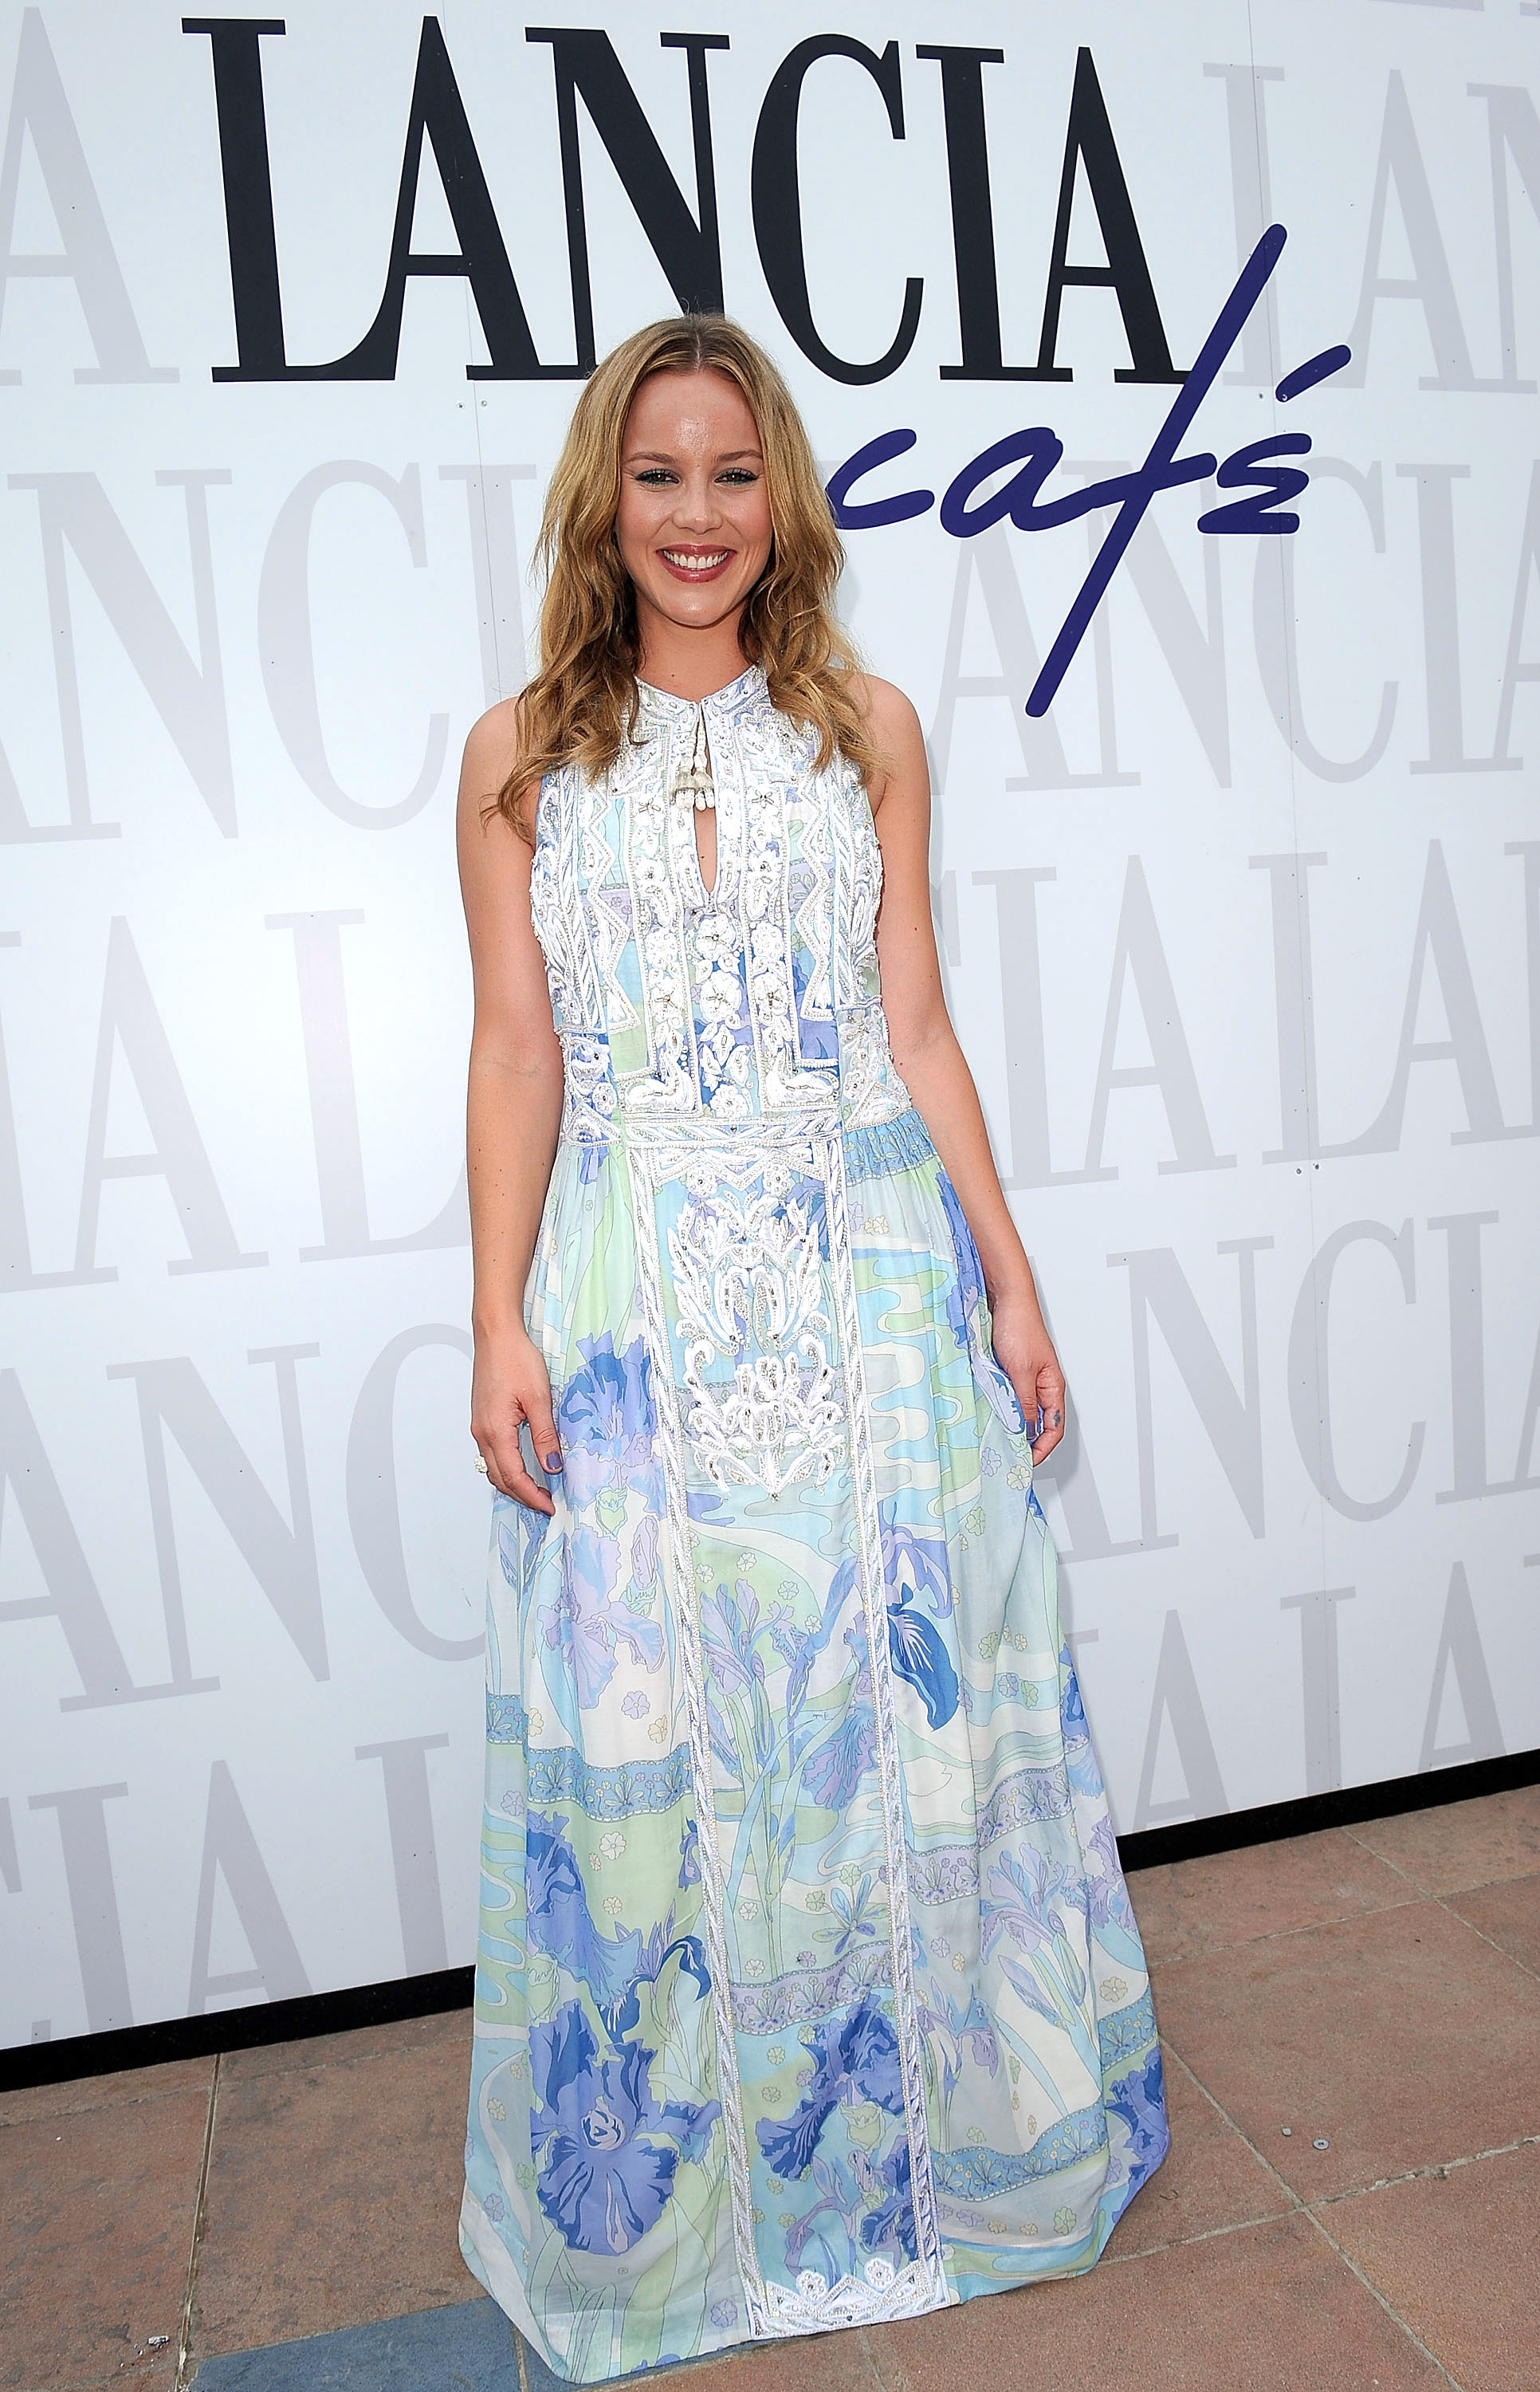 Abbie Cornish donned a long, print maxi dress at the Lancia Cafe.